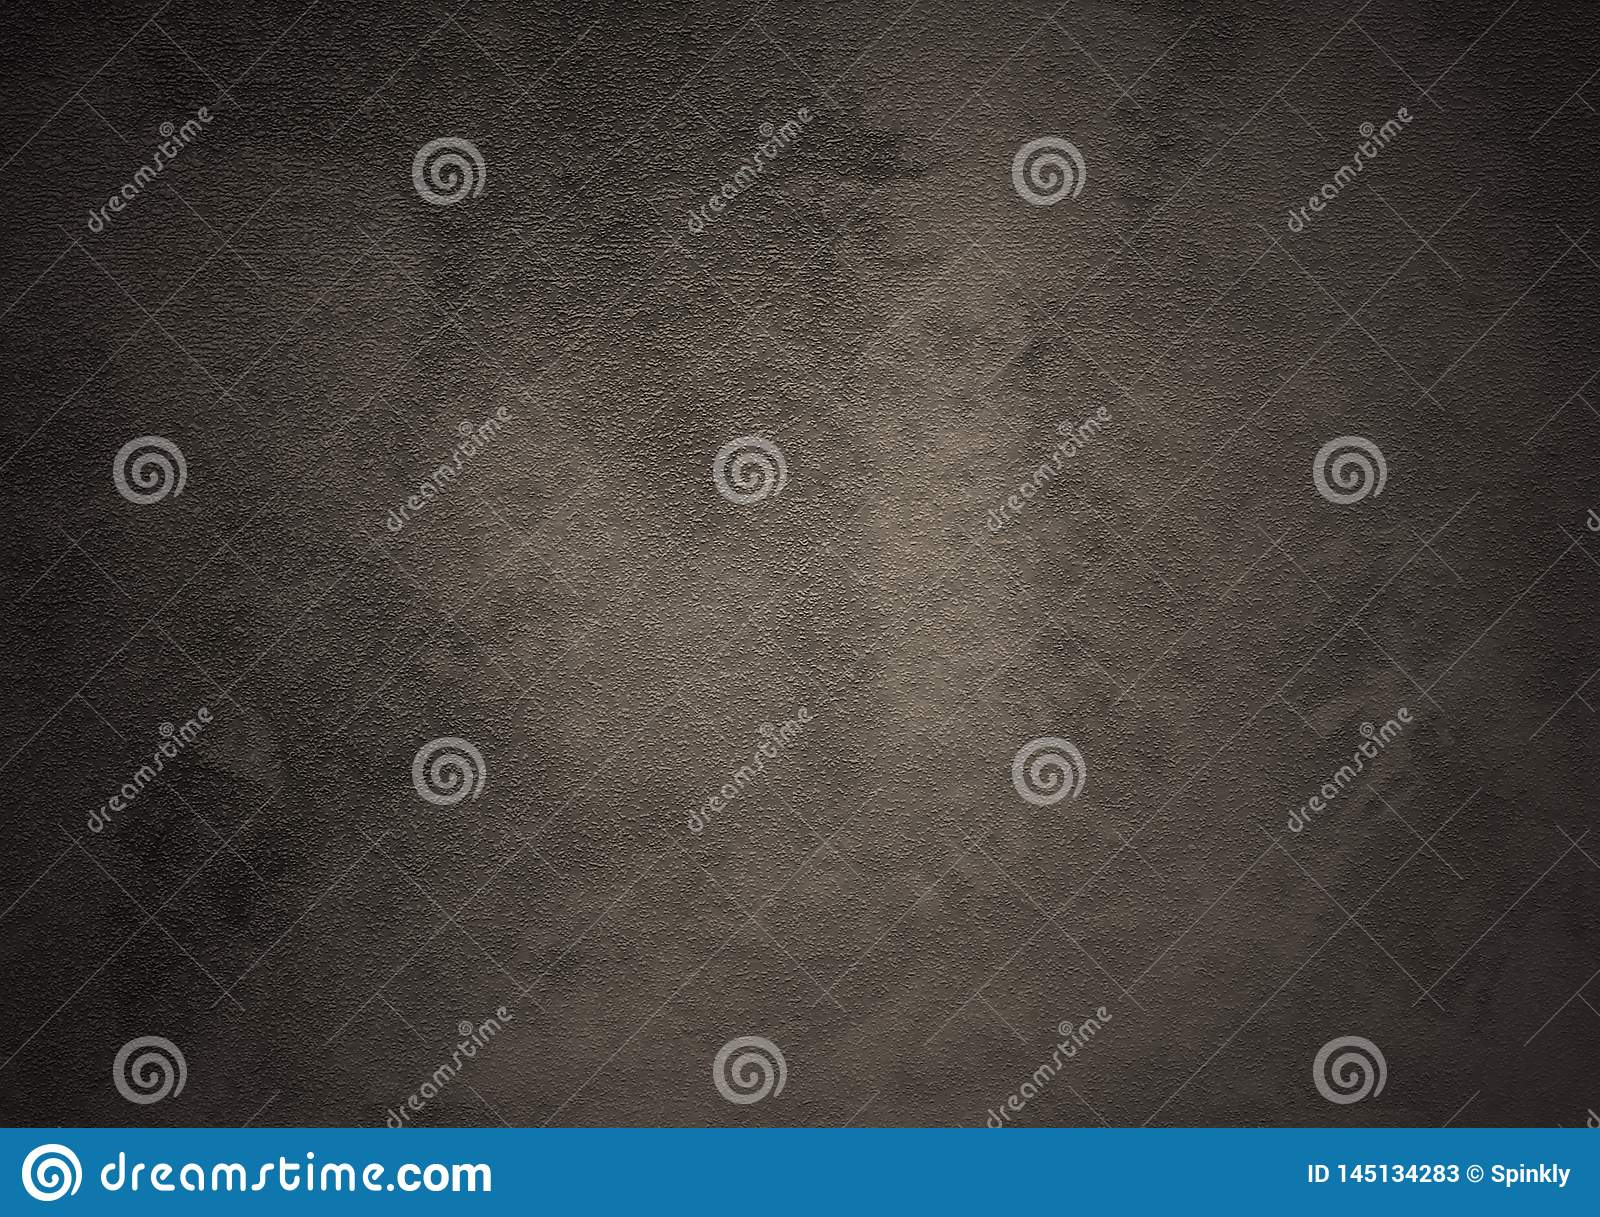 Grey textured background wallpaper for designs